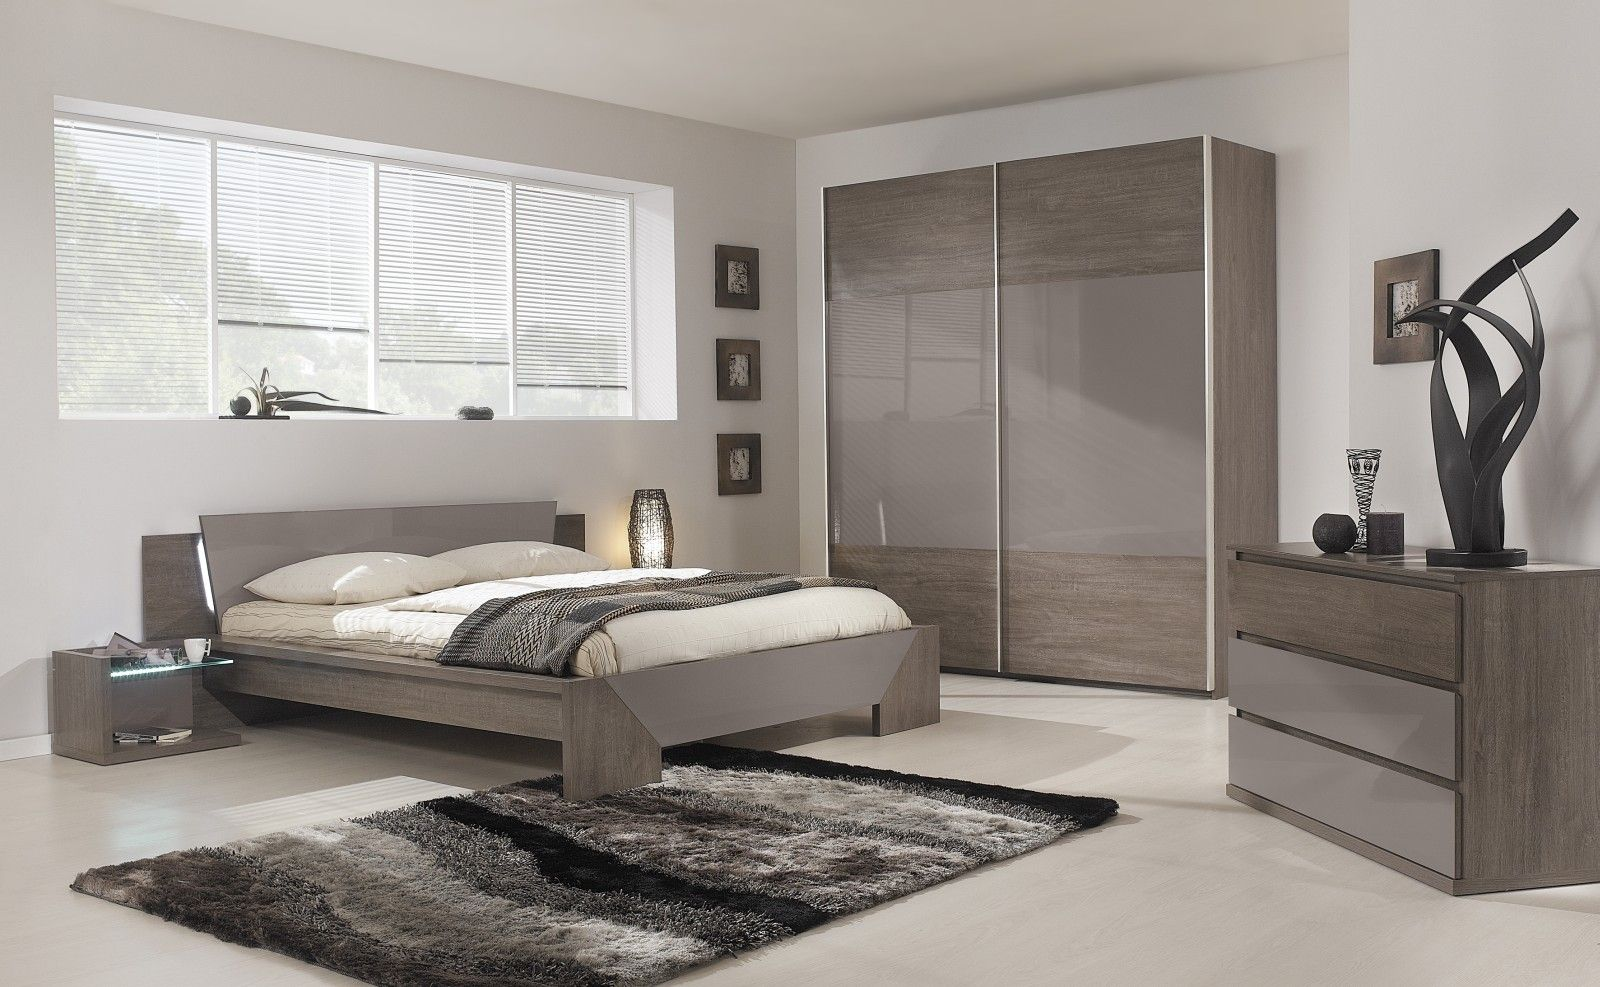 28 Relaxing Contemporary Bedroom Design Ideas Ev